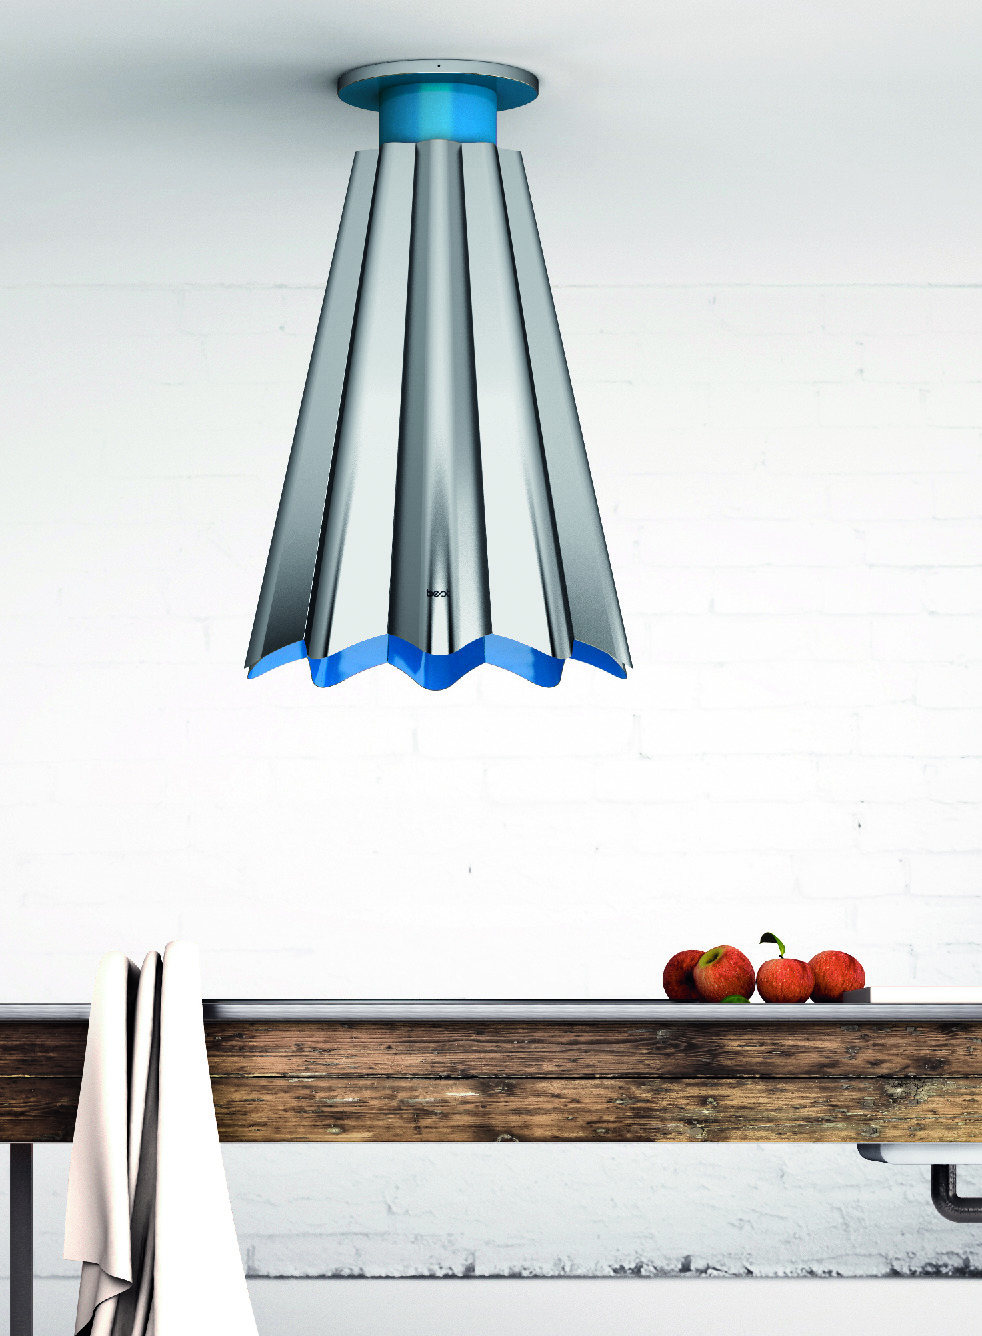 Range hood with color matching system